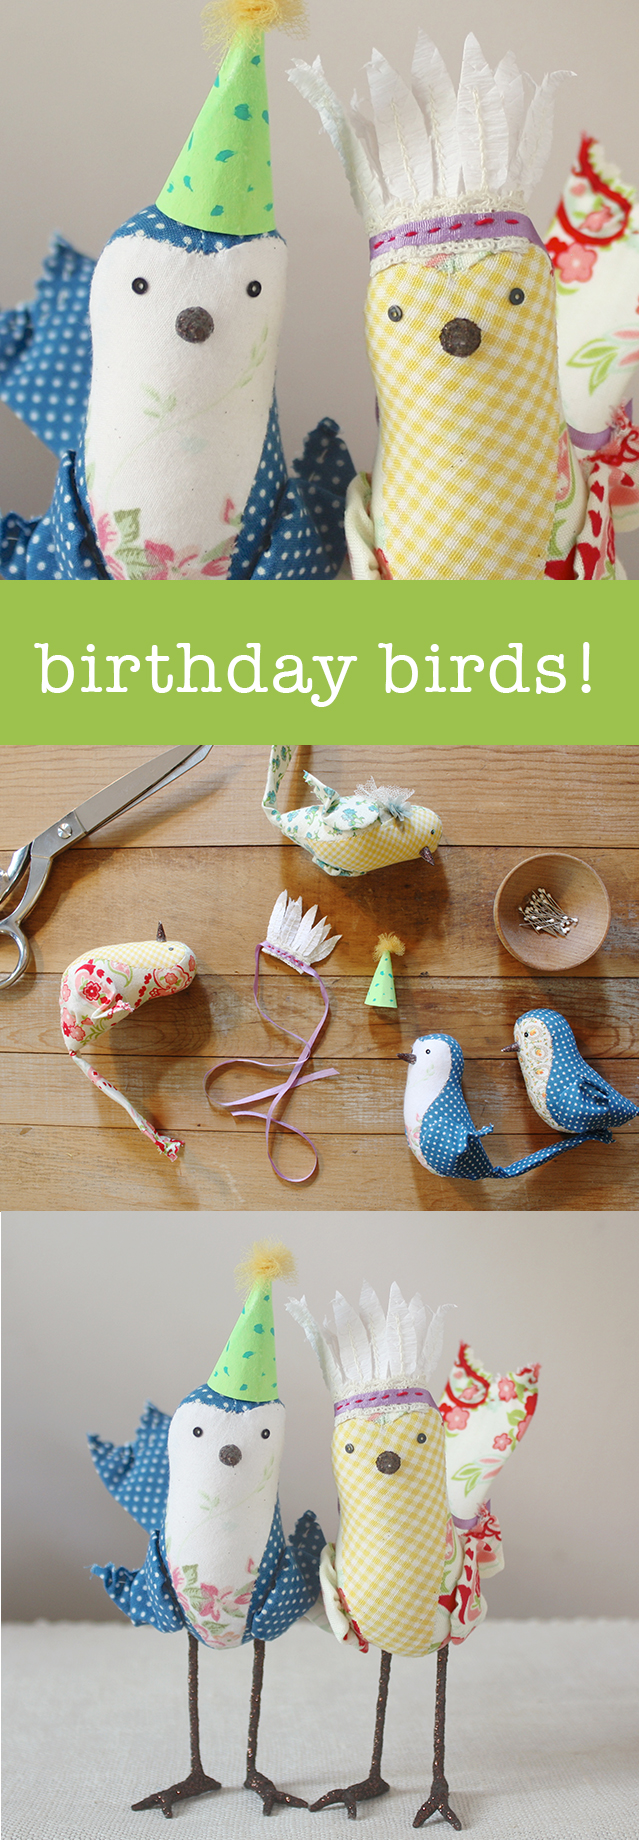 birthday party birds